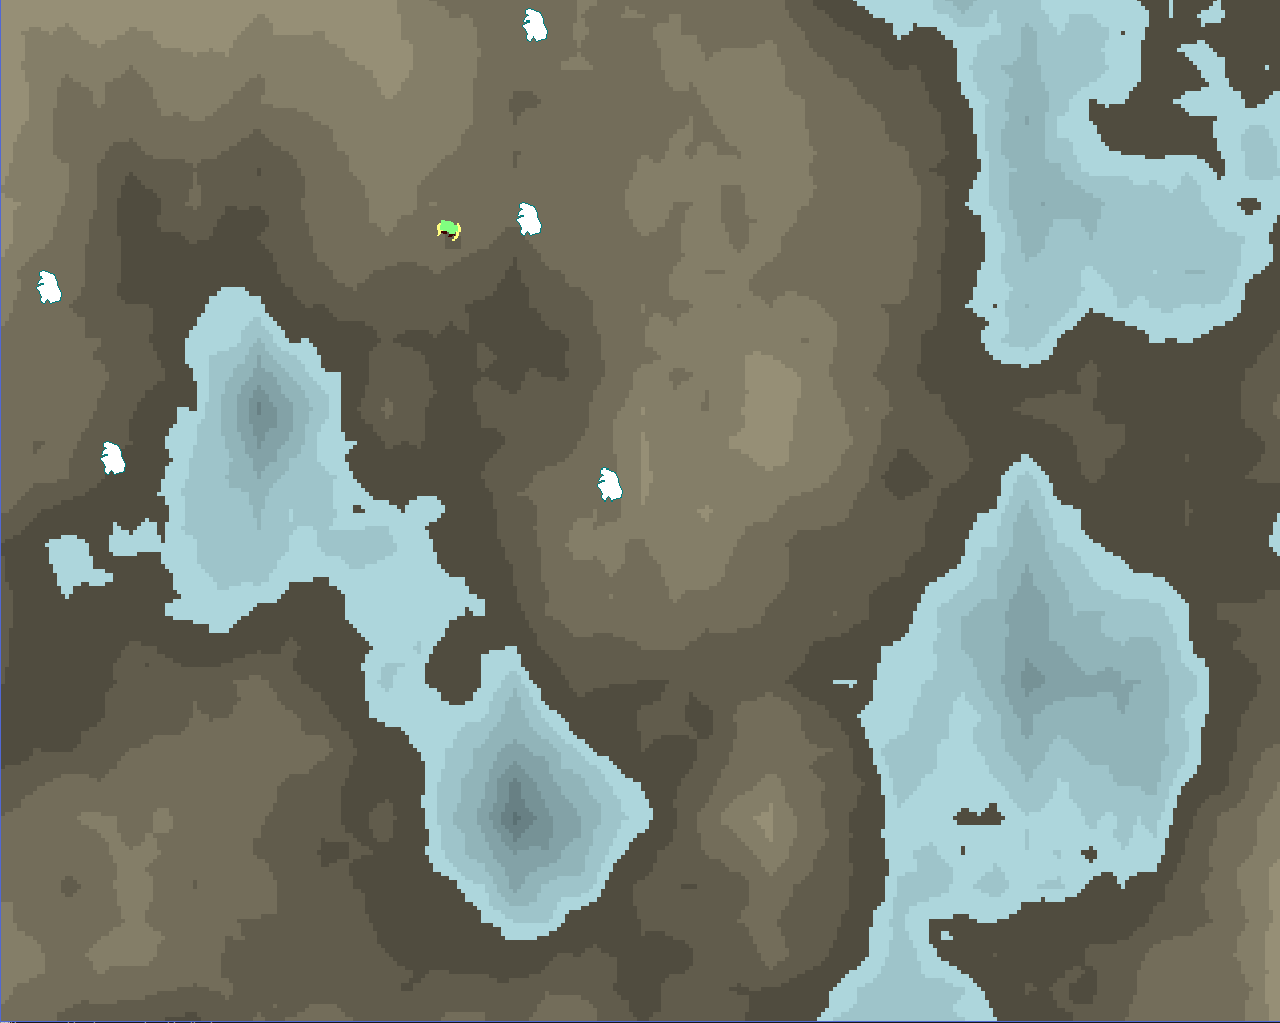 2D Perlin Noise Map